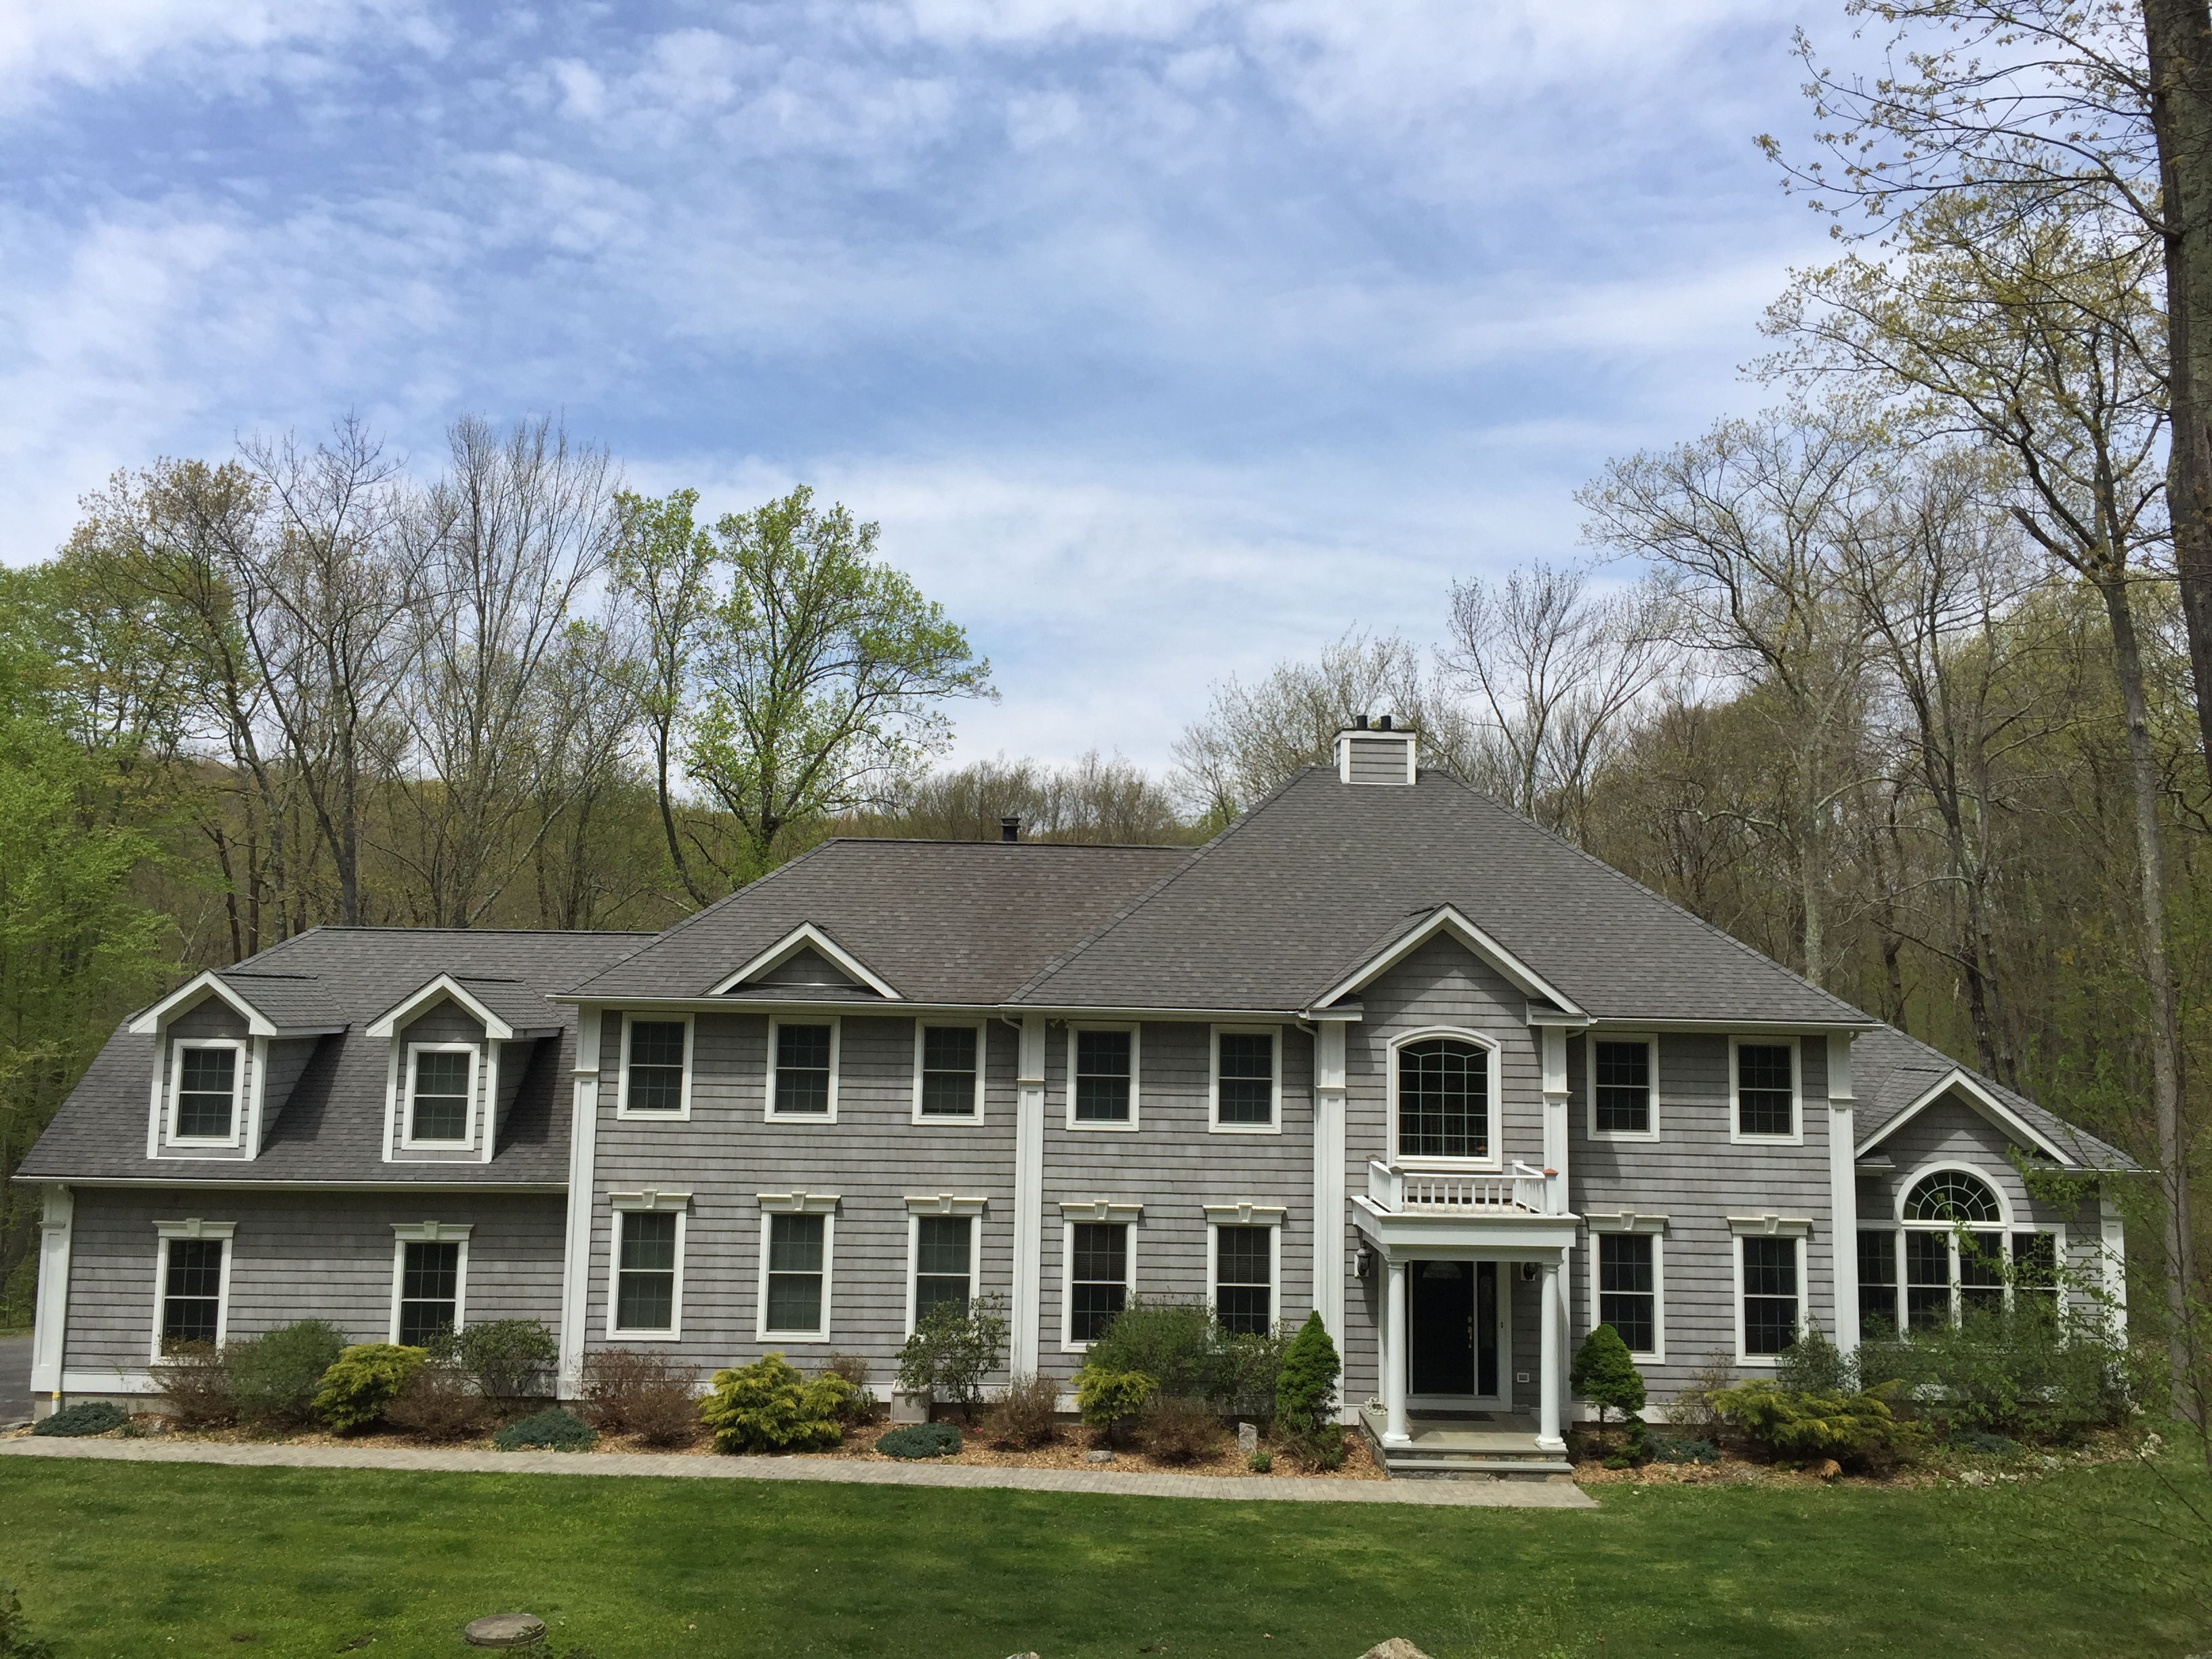 Single Family Home for Sale at Main Level En Suite Bedroom 11 Rock Ridge Court New Fairfield, Connecticut, 06812 United States